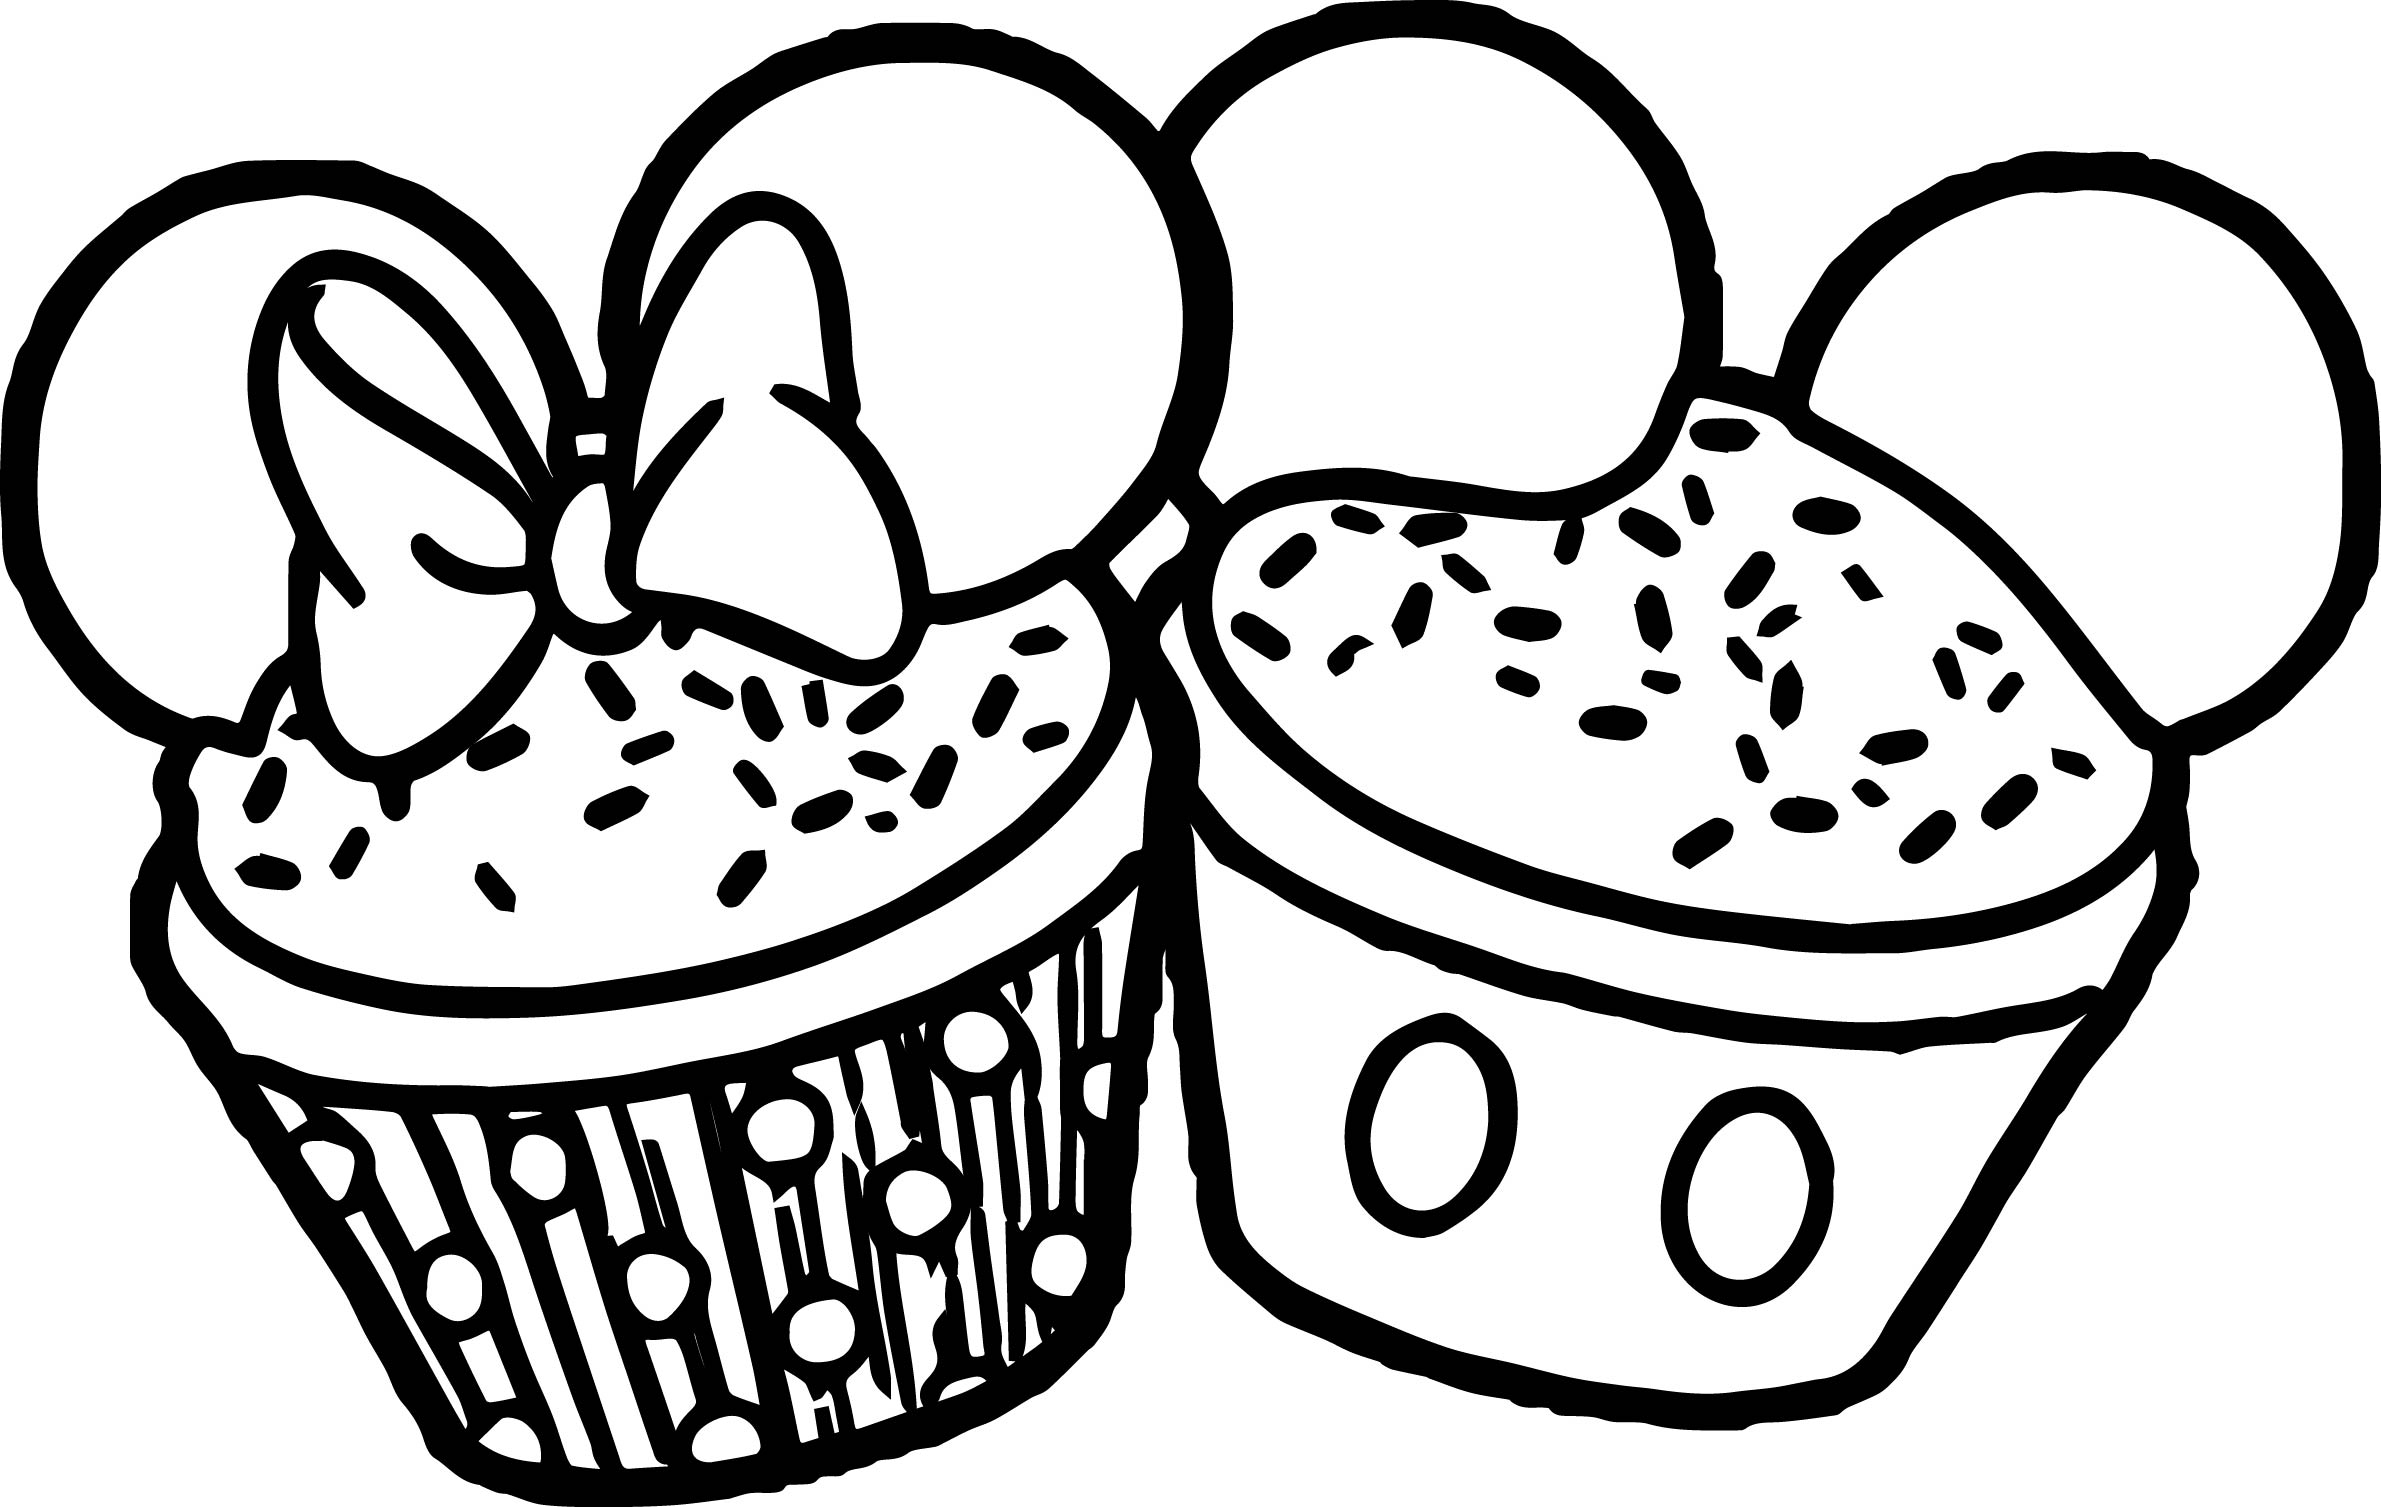 Minnie Mickey Cupcake Ears Coloring